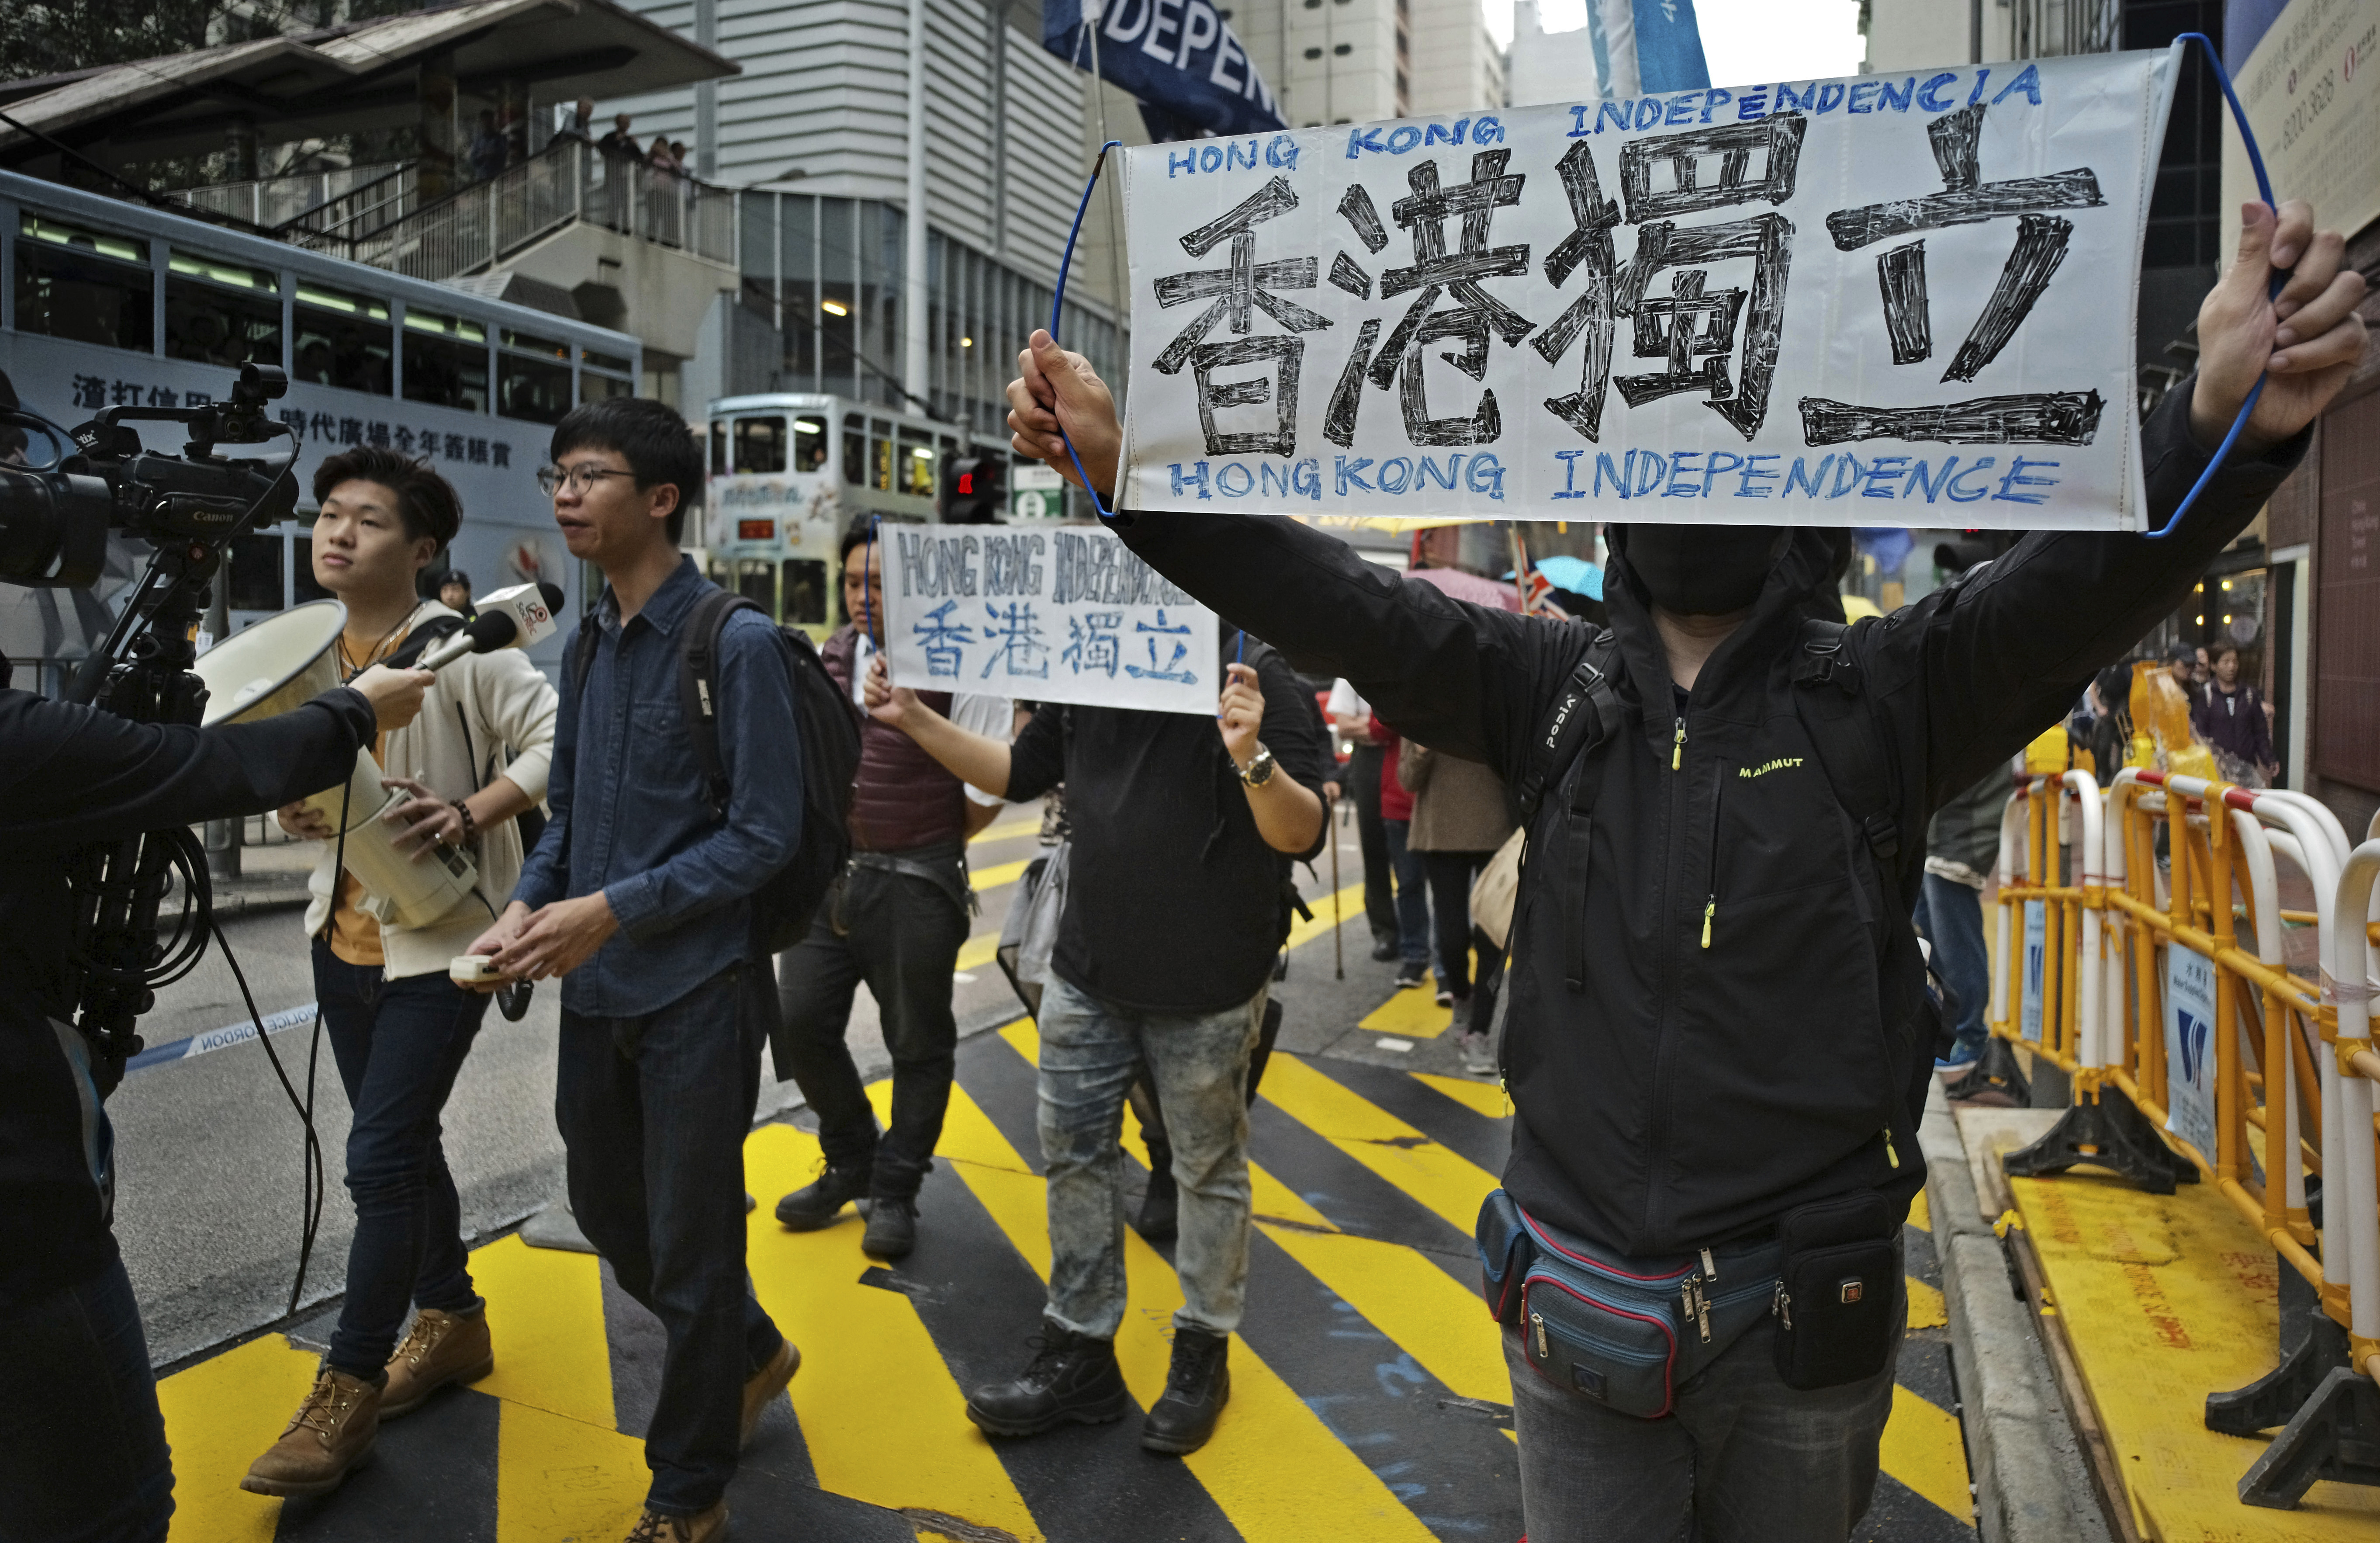 """FILE - Protesters against an extradition law hold banners reading """"Hong Kong Independence"""" during an anti-extradition law march toward government headquarters in Hong Kong, March 31, 2019."""